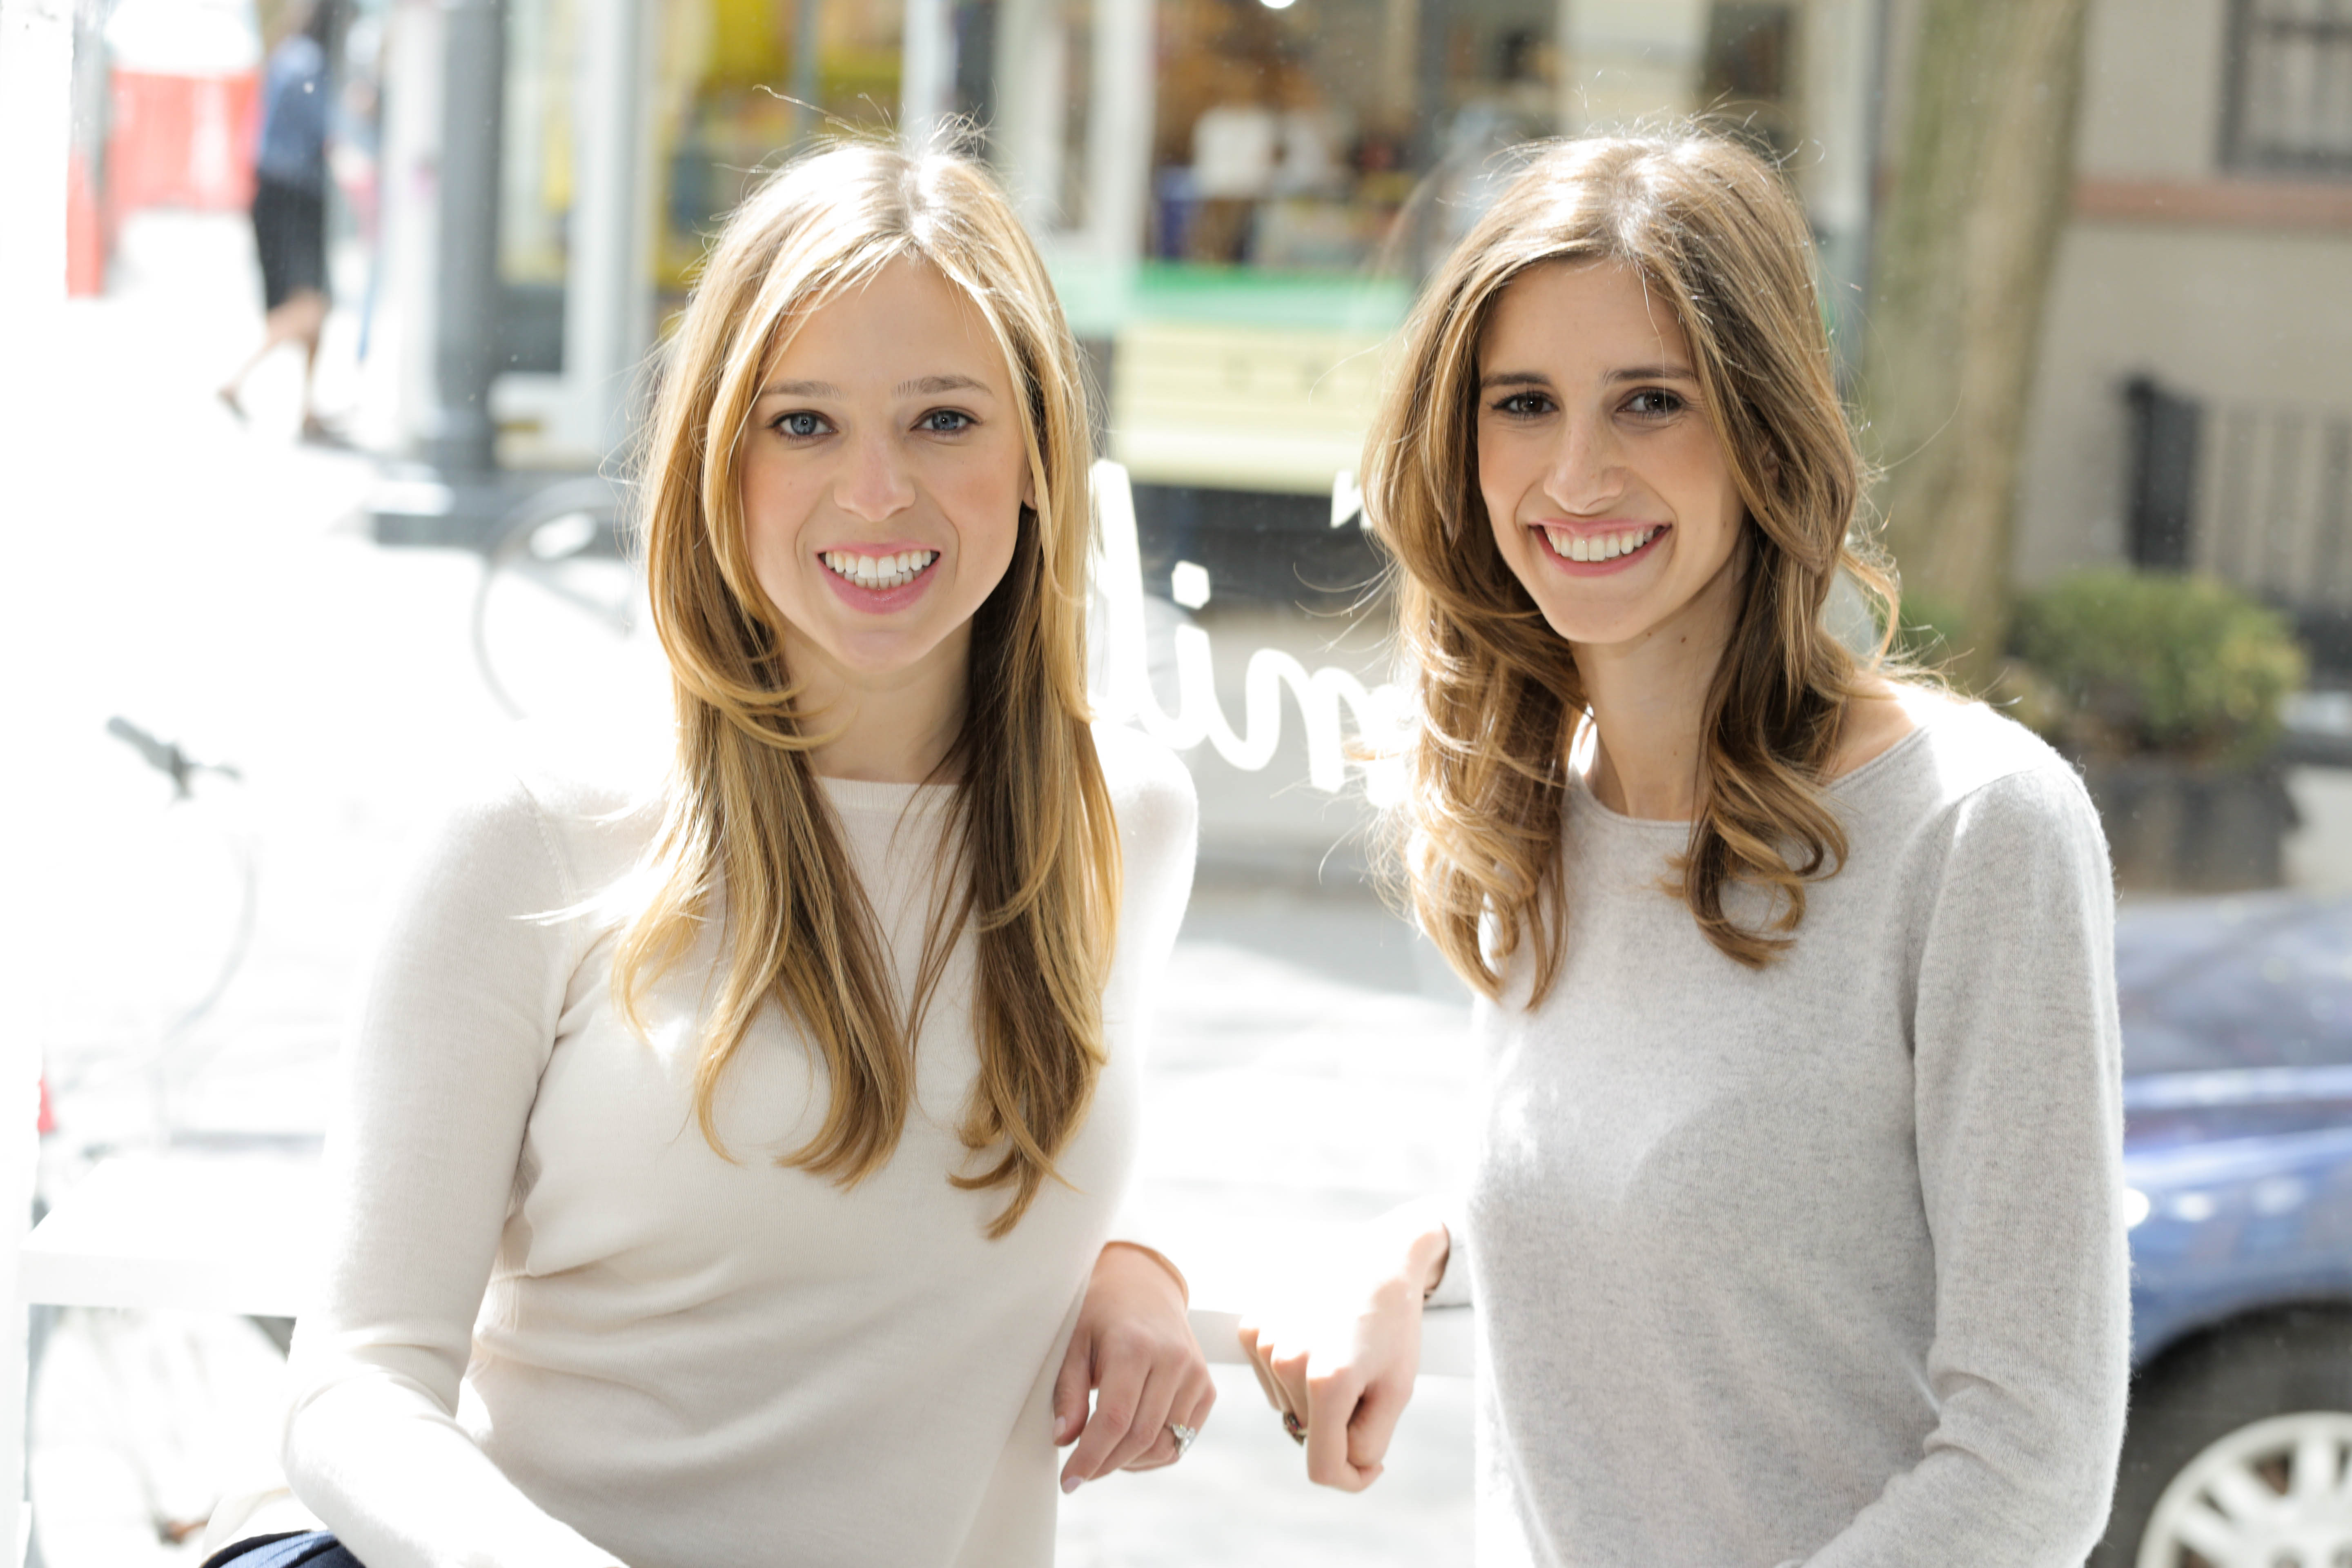 The innovative founders of theSkimm, Danielle Weisberg and Carly Zakin, are the keynote speakers for the NWLN fall conference.